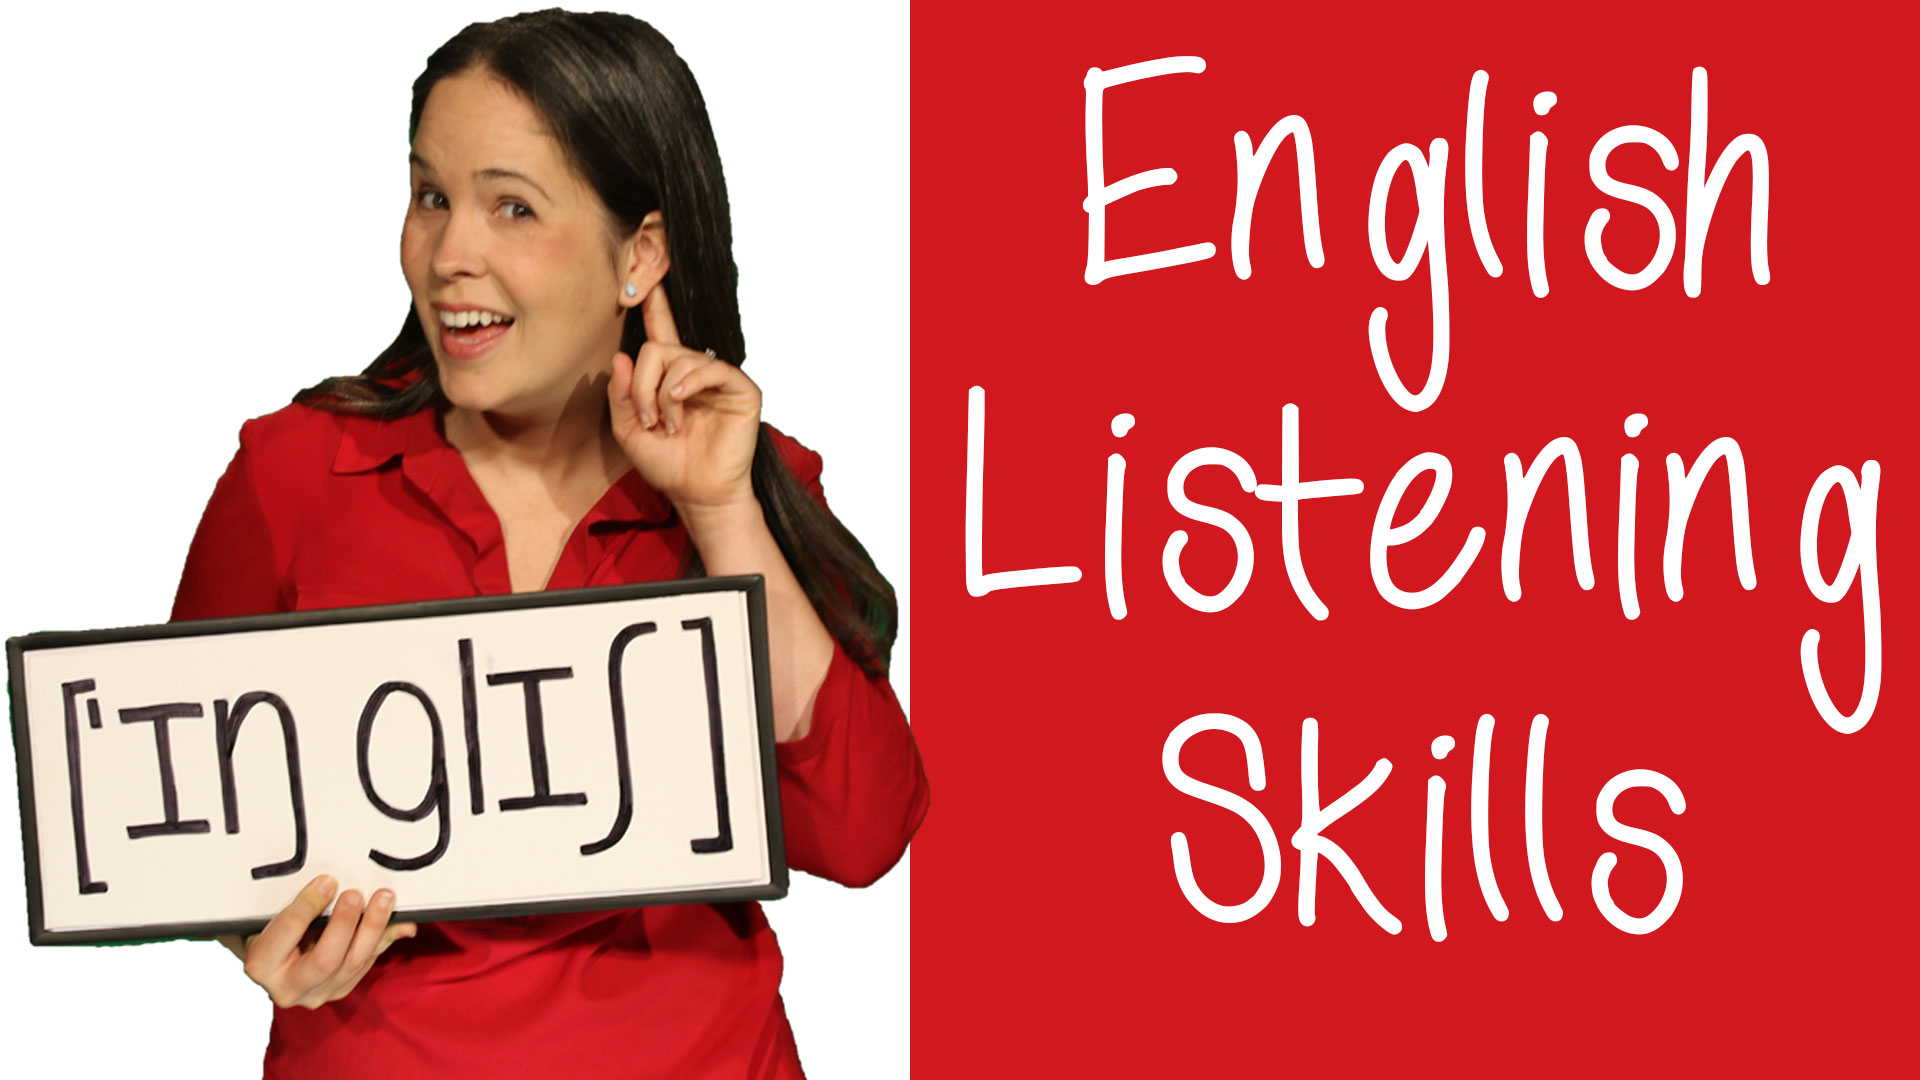 how to improve english listening skills Improvement of listening skills is not my reason to work with people from english speaking countries, but it for sure makes my listening skills better while i watch/listen to movies, series, live shows, videos i use headphones.